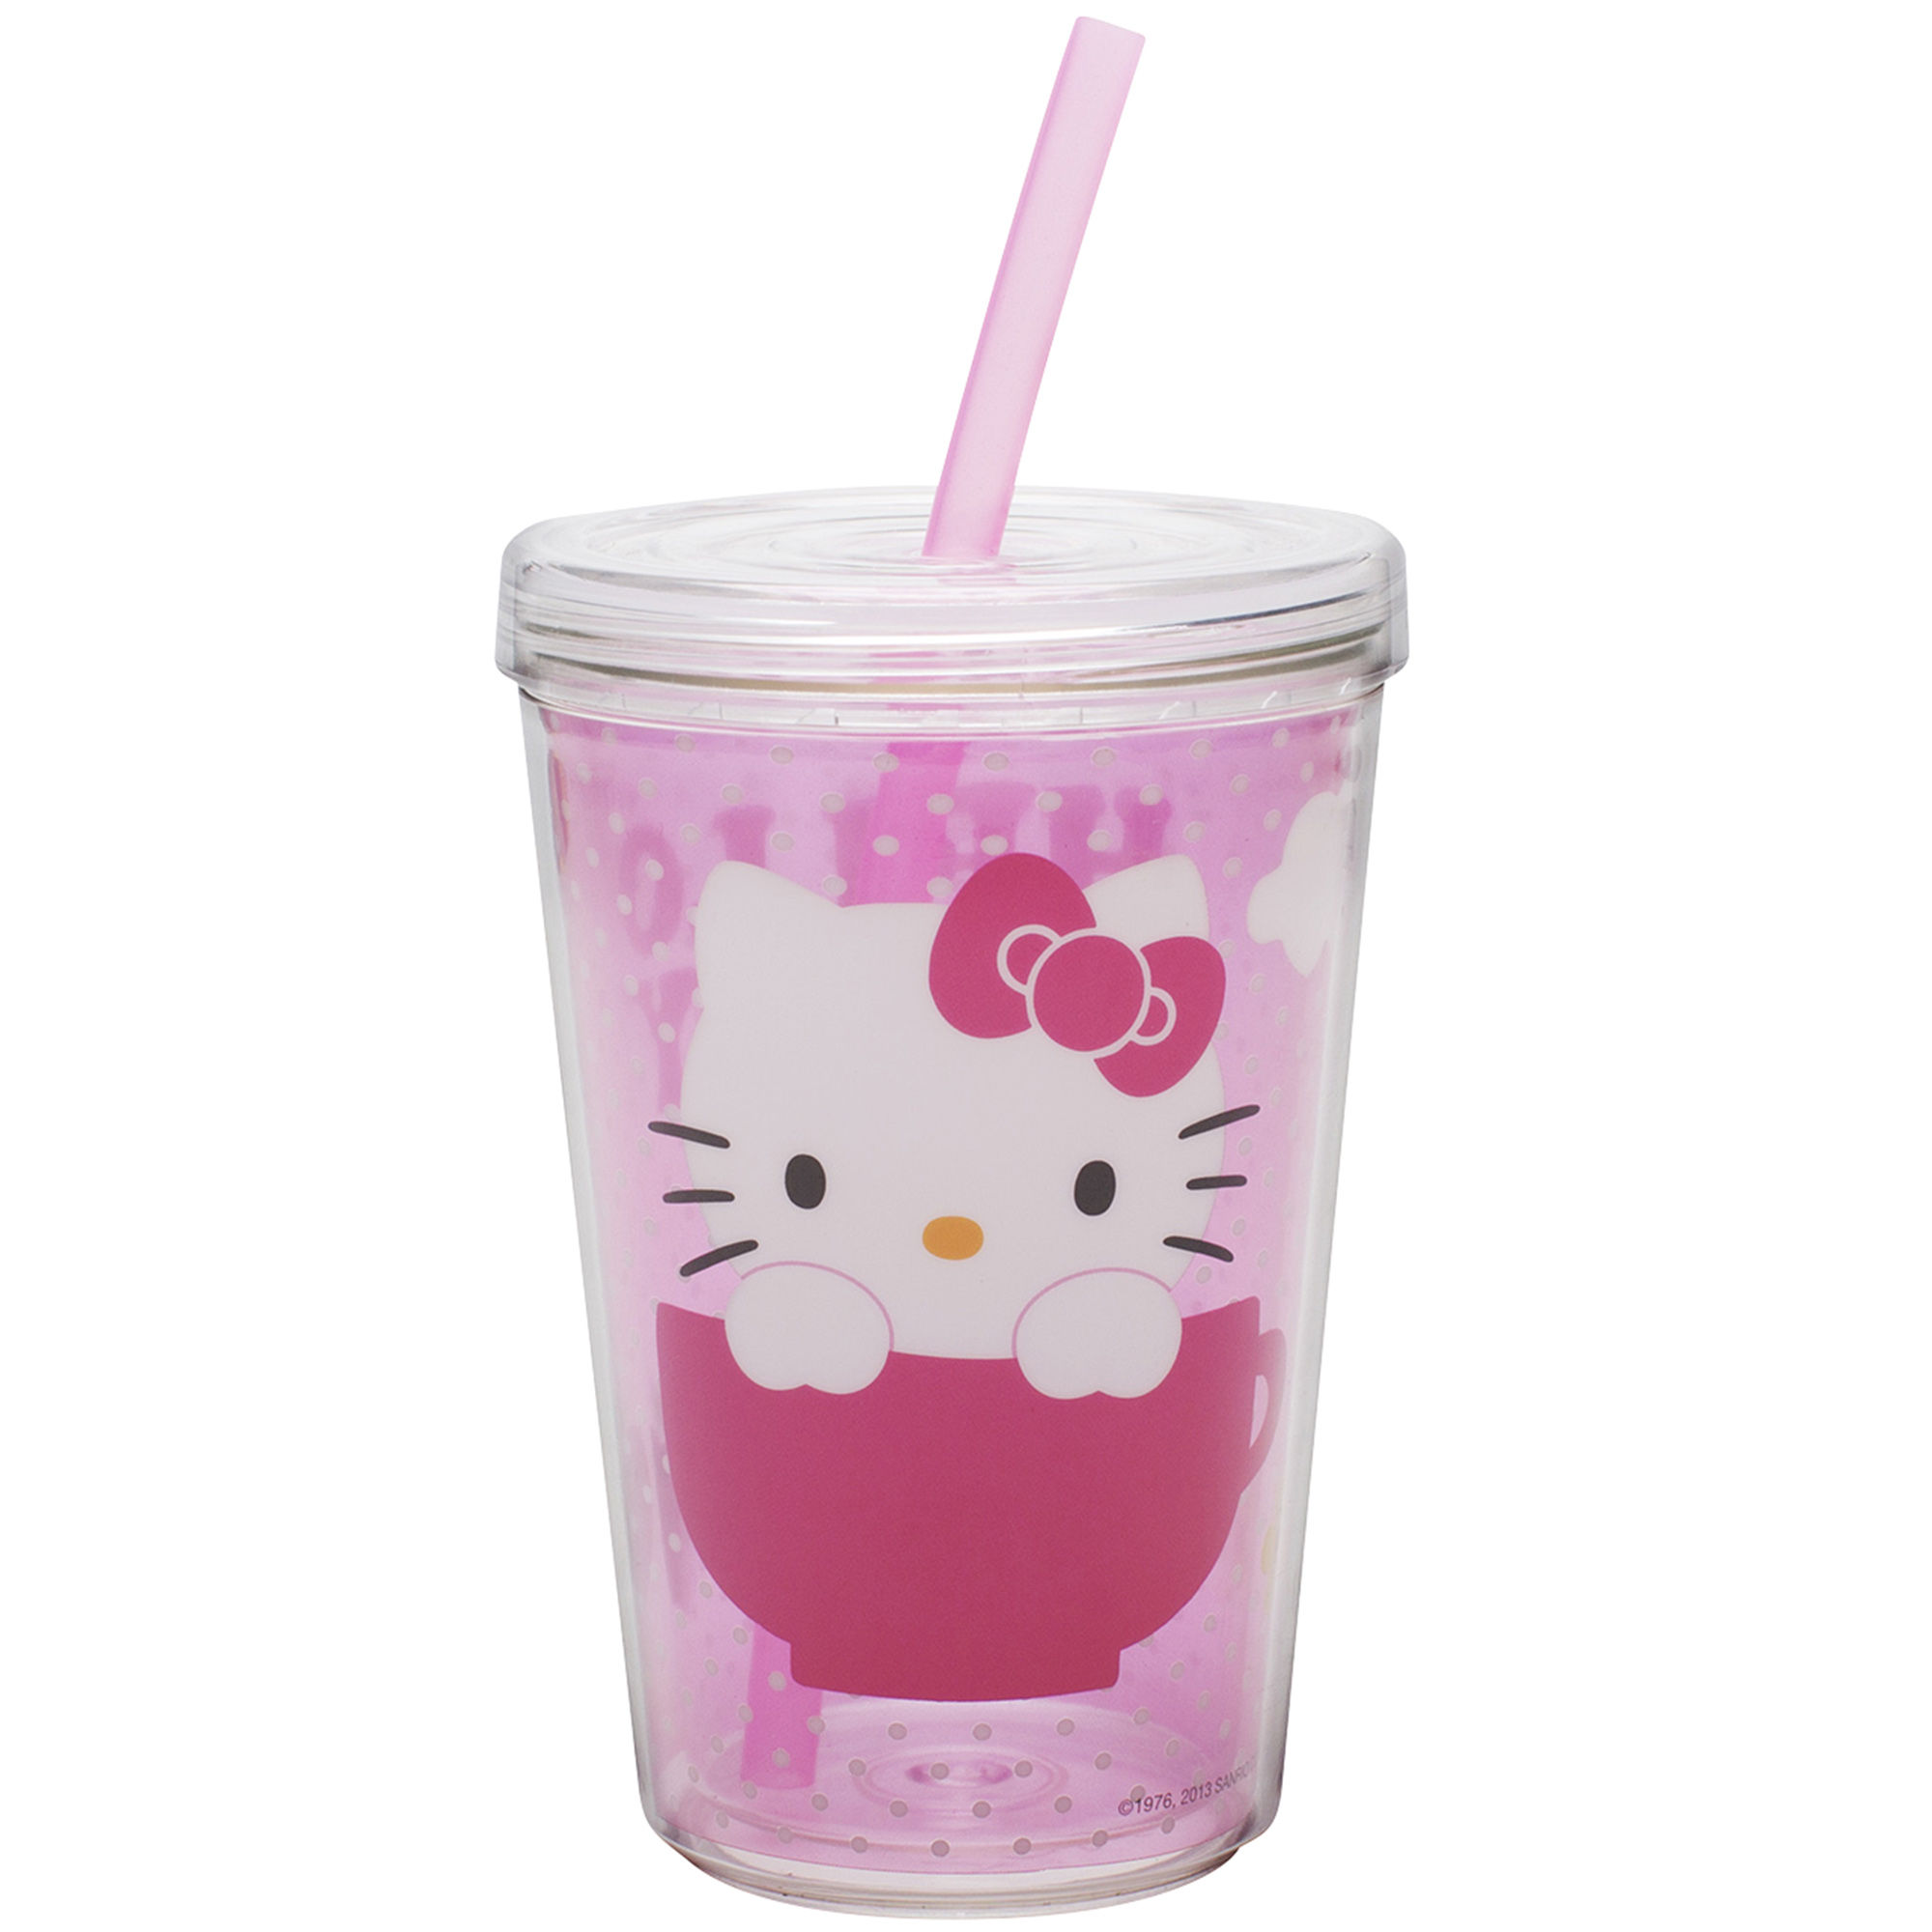 Zak Designs Hello Kitty 13-oz. Tumbler with Straw